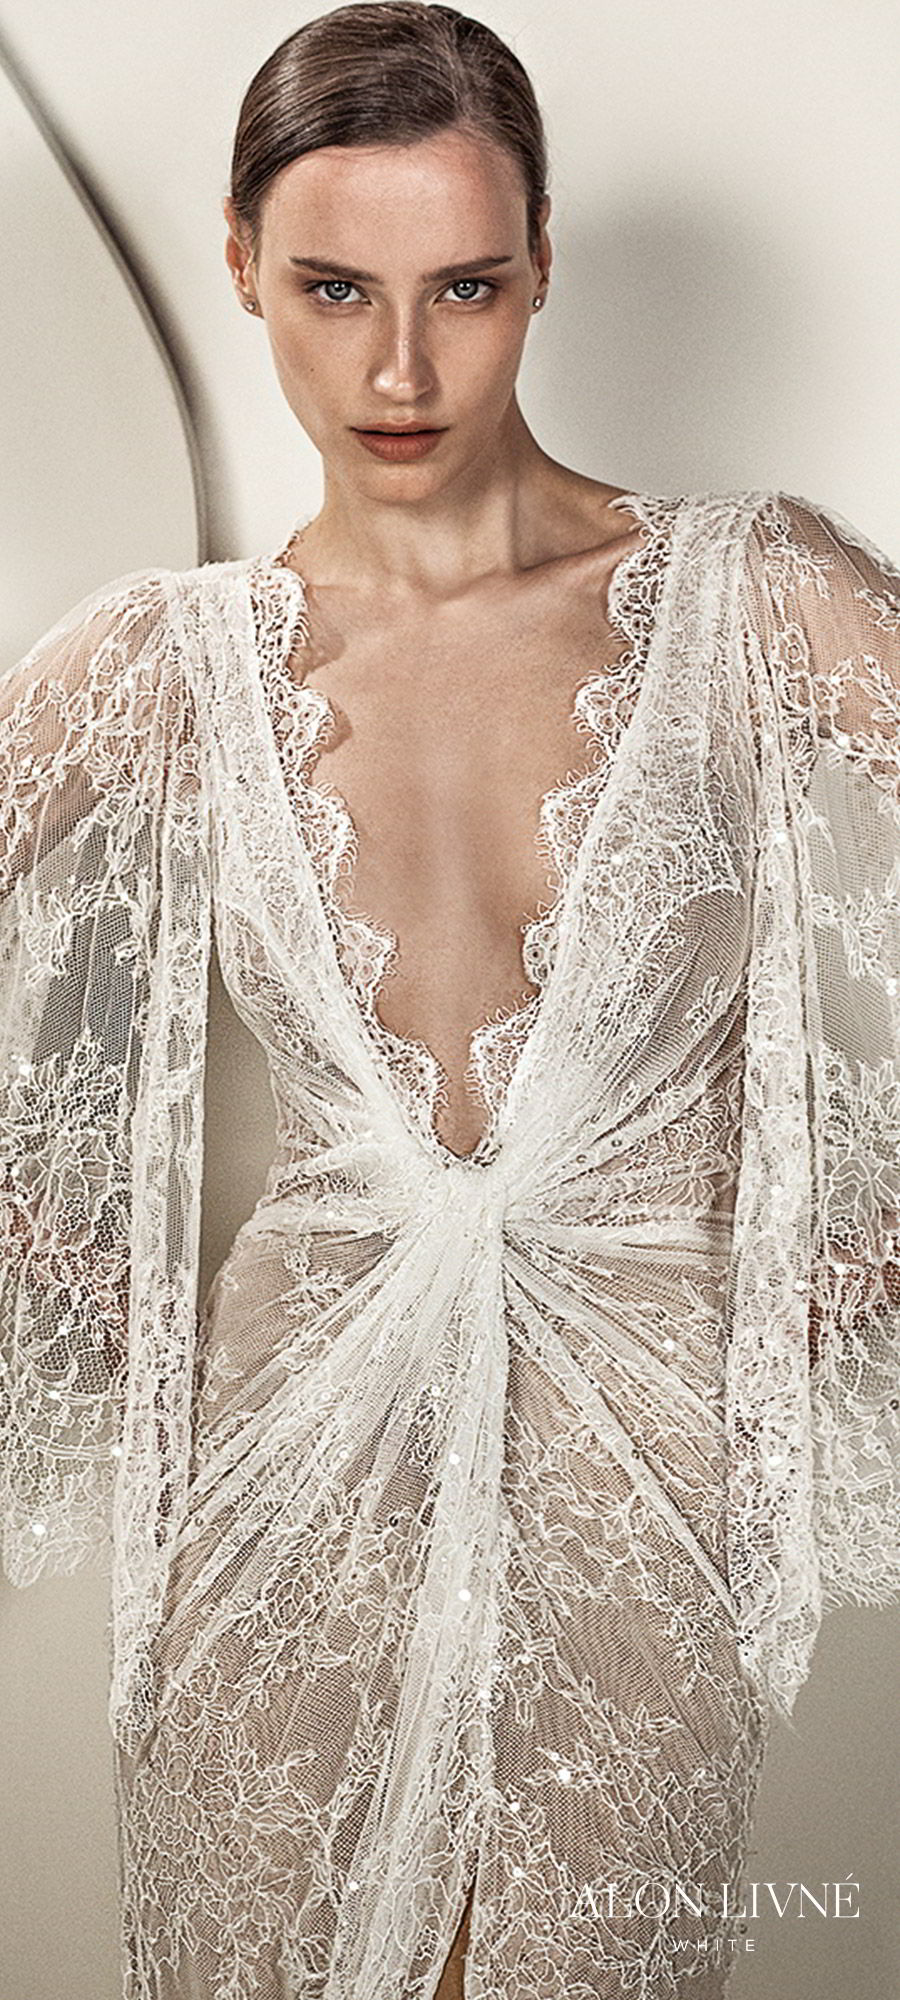 alon livne white spring 2020 bridal illusion 3 quarter flutter sleeves deep v neckline ruched bodice lace sheath kaftan wedding dress (kylie) slit skirt romantic boho chic zv